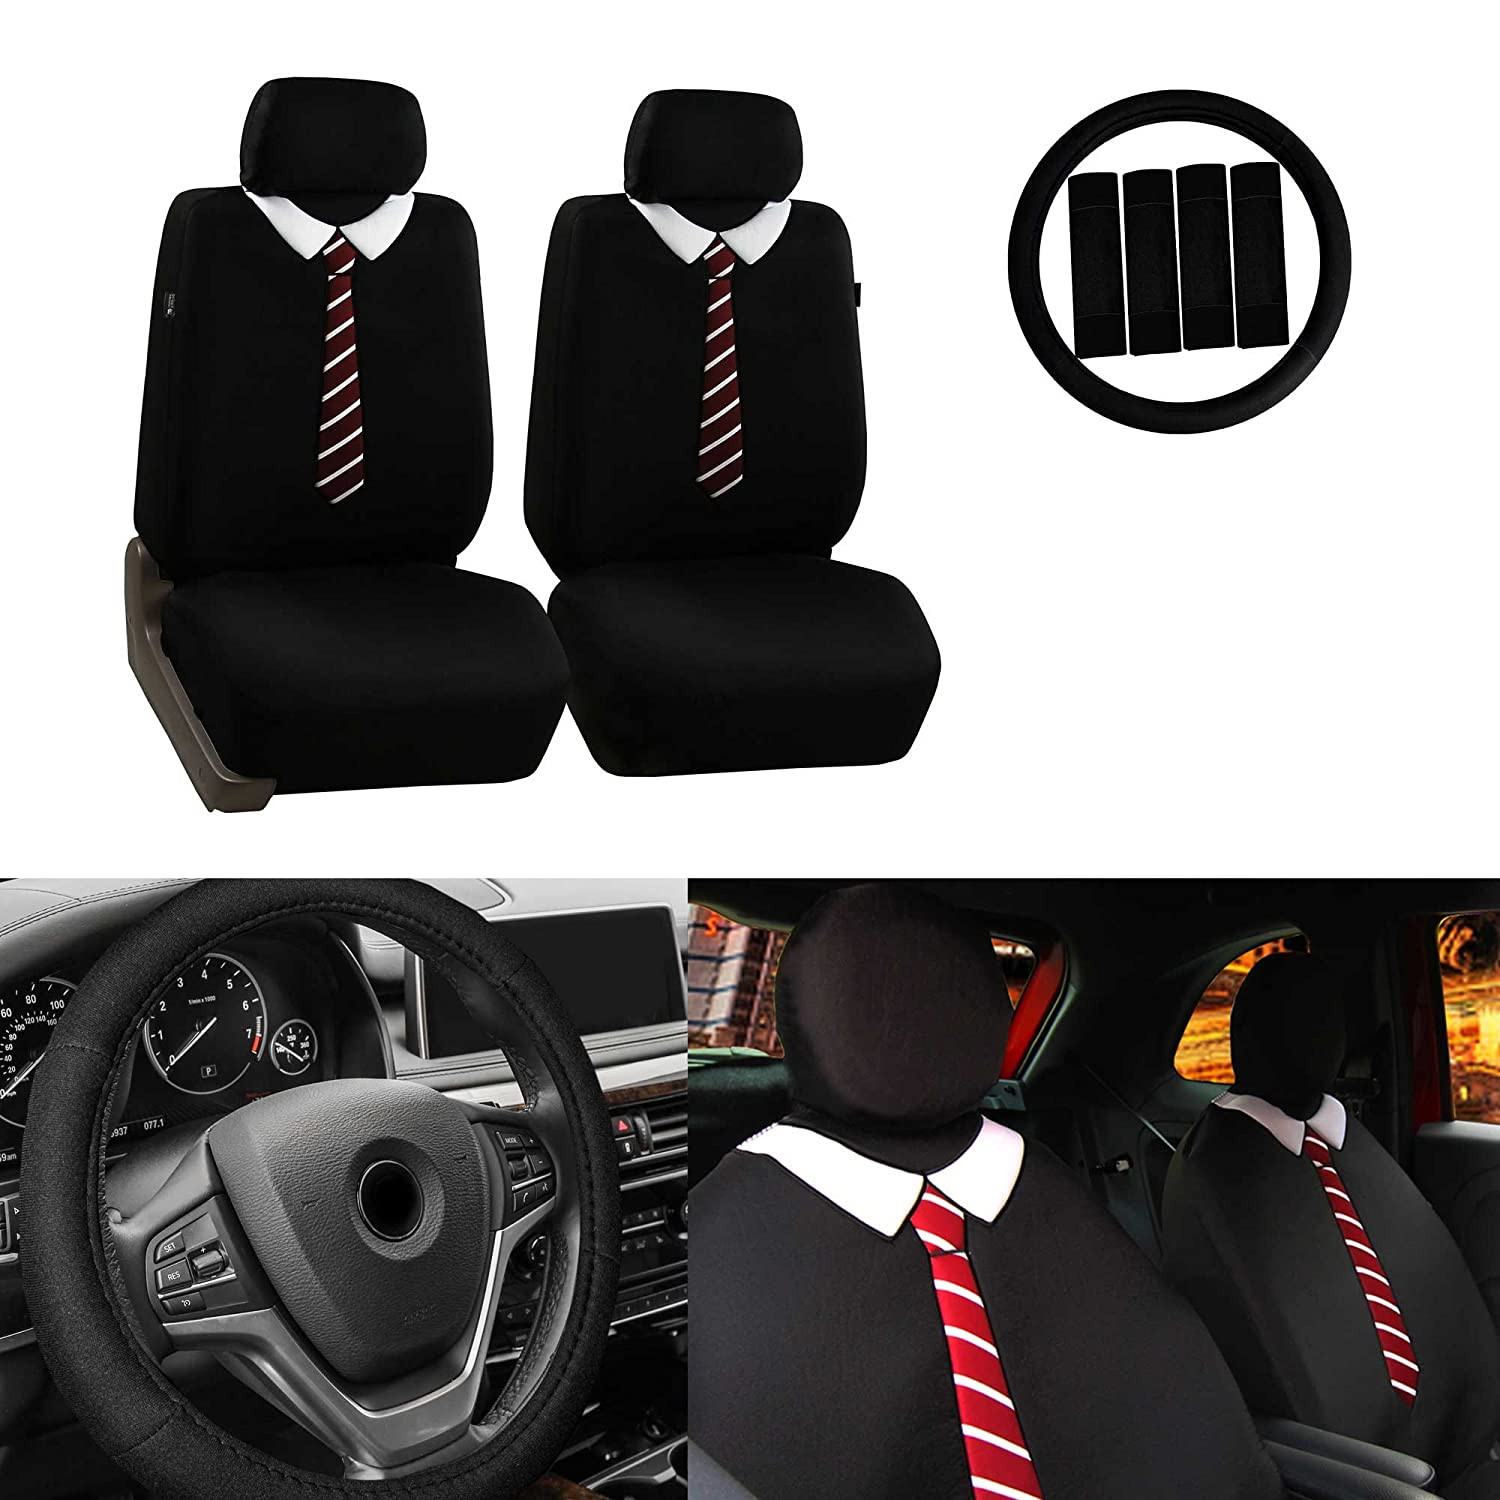 Truck SUV or Van FH Group FB068013 Premium 3D Air Mesh Split Bench Seat Cover Solid Black Color- Fit Most Car